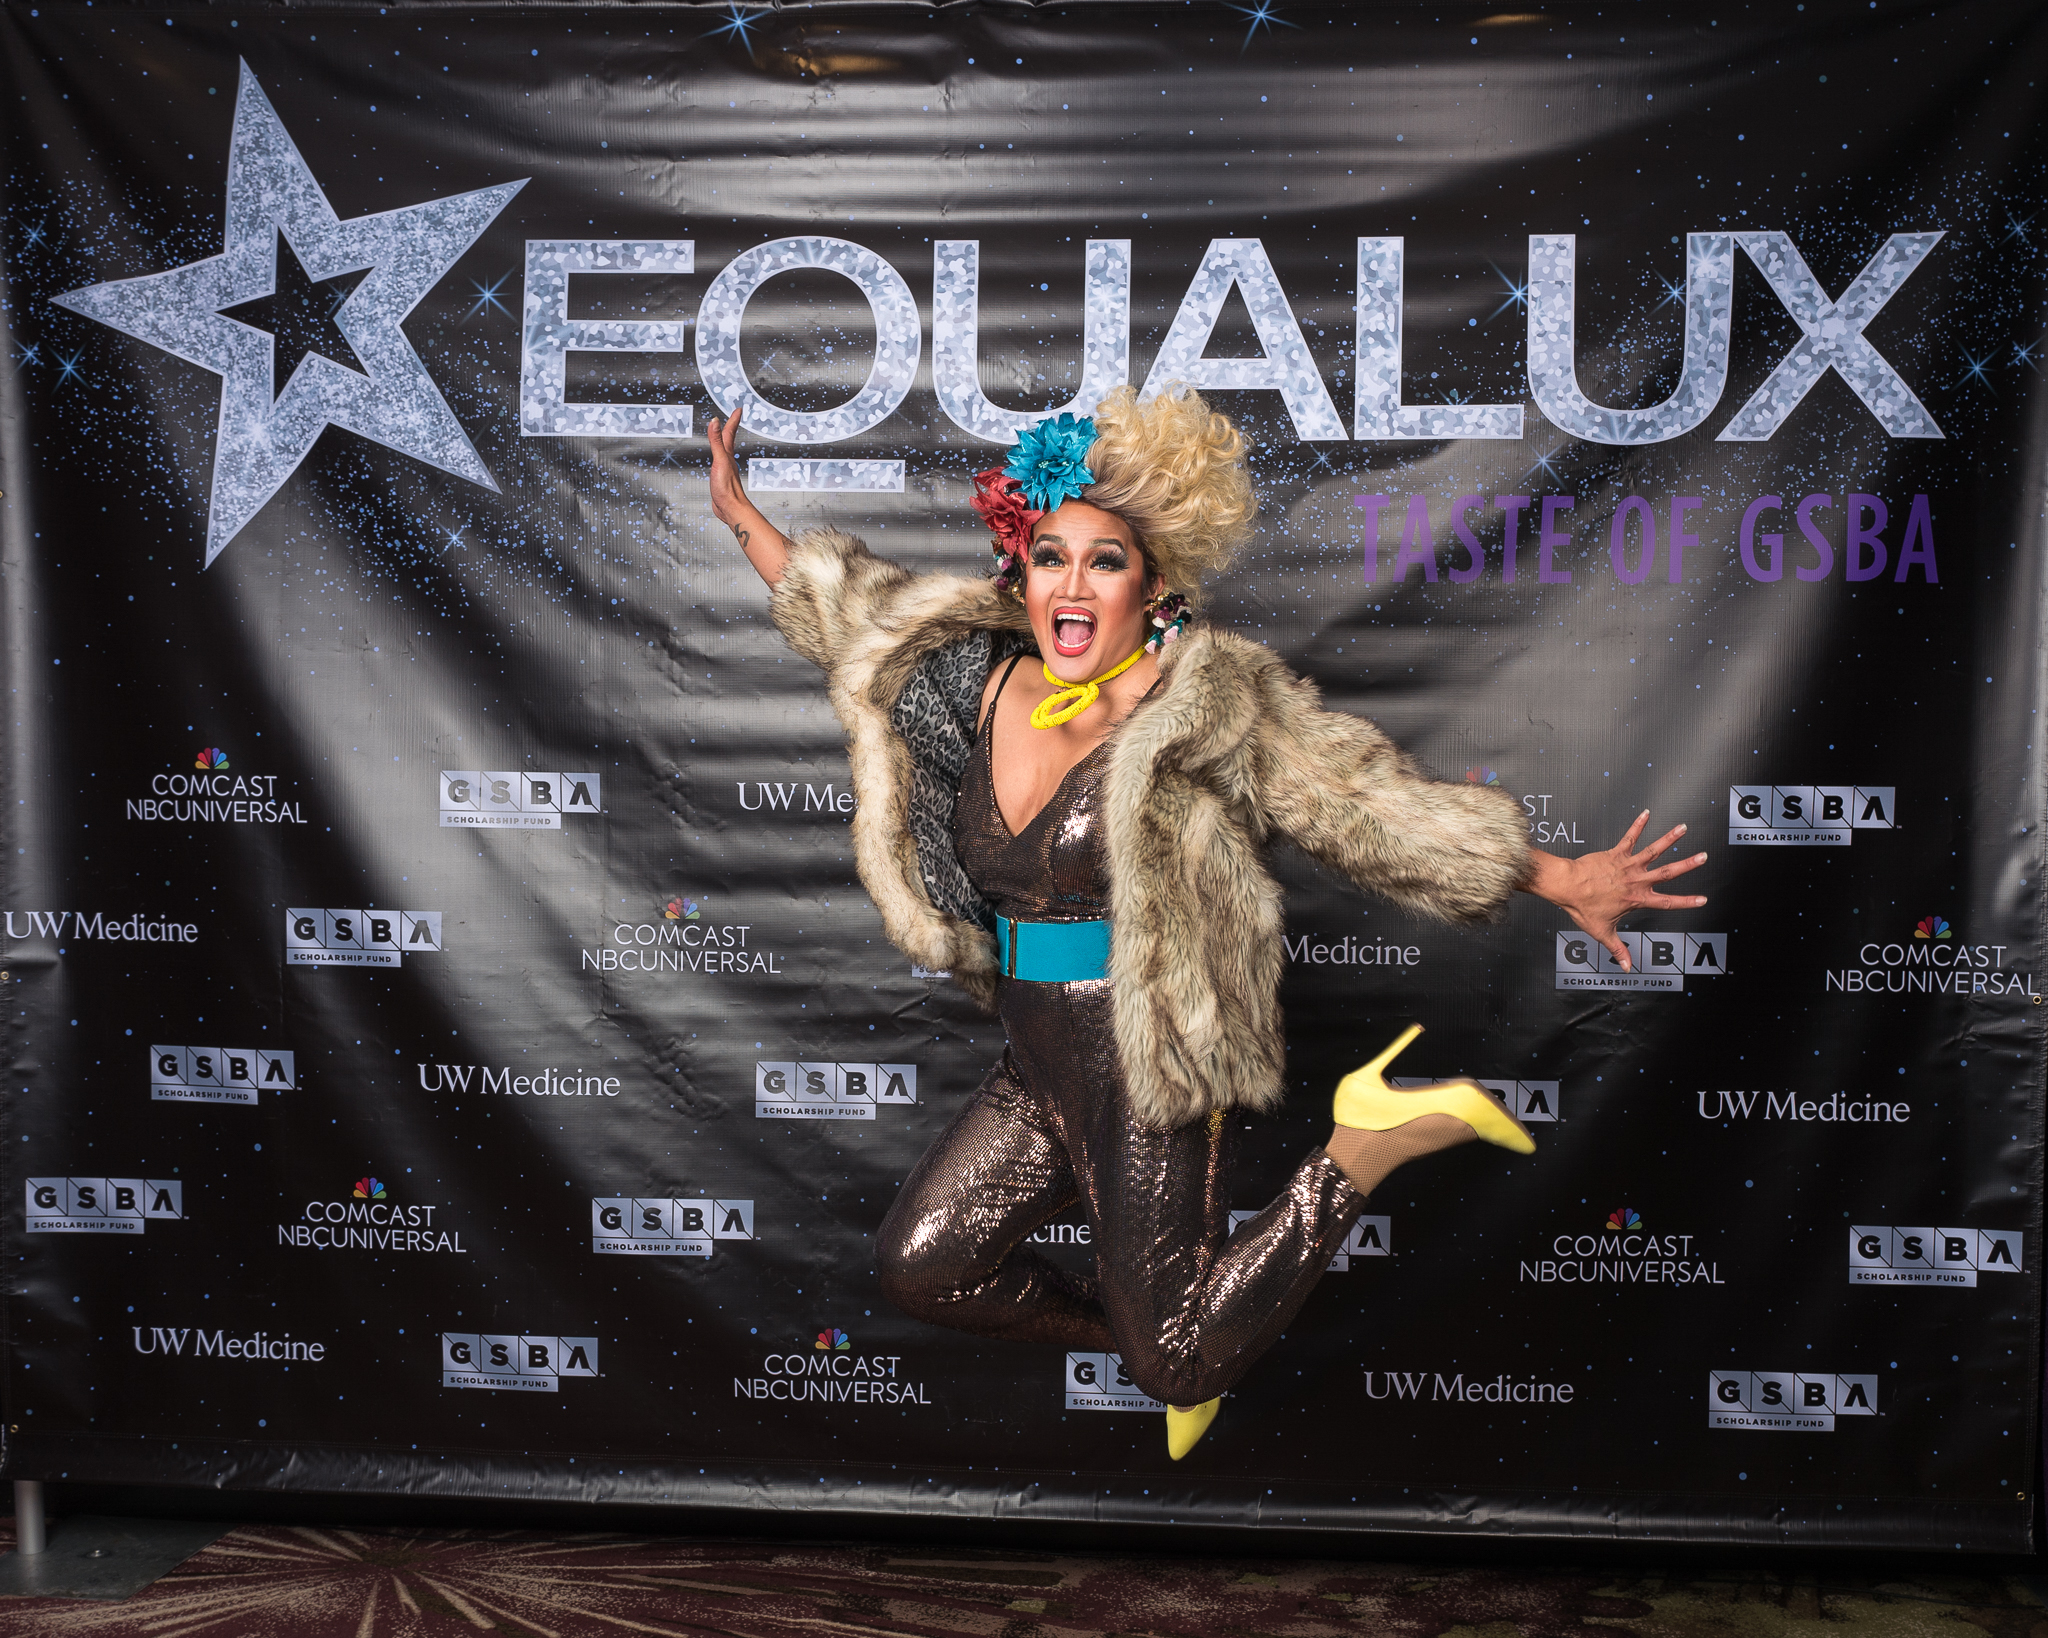 111718_GSBA EQUALUX at The Westin Seattle (Credit- Nate Gowdy)-13.jpg